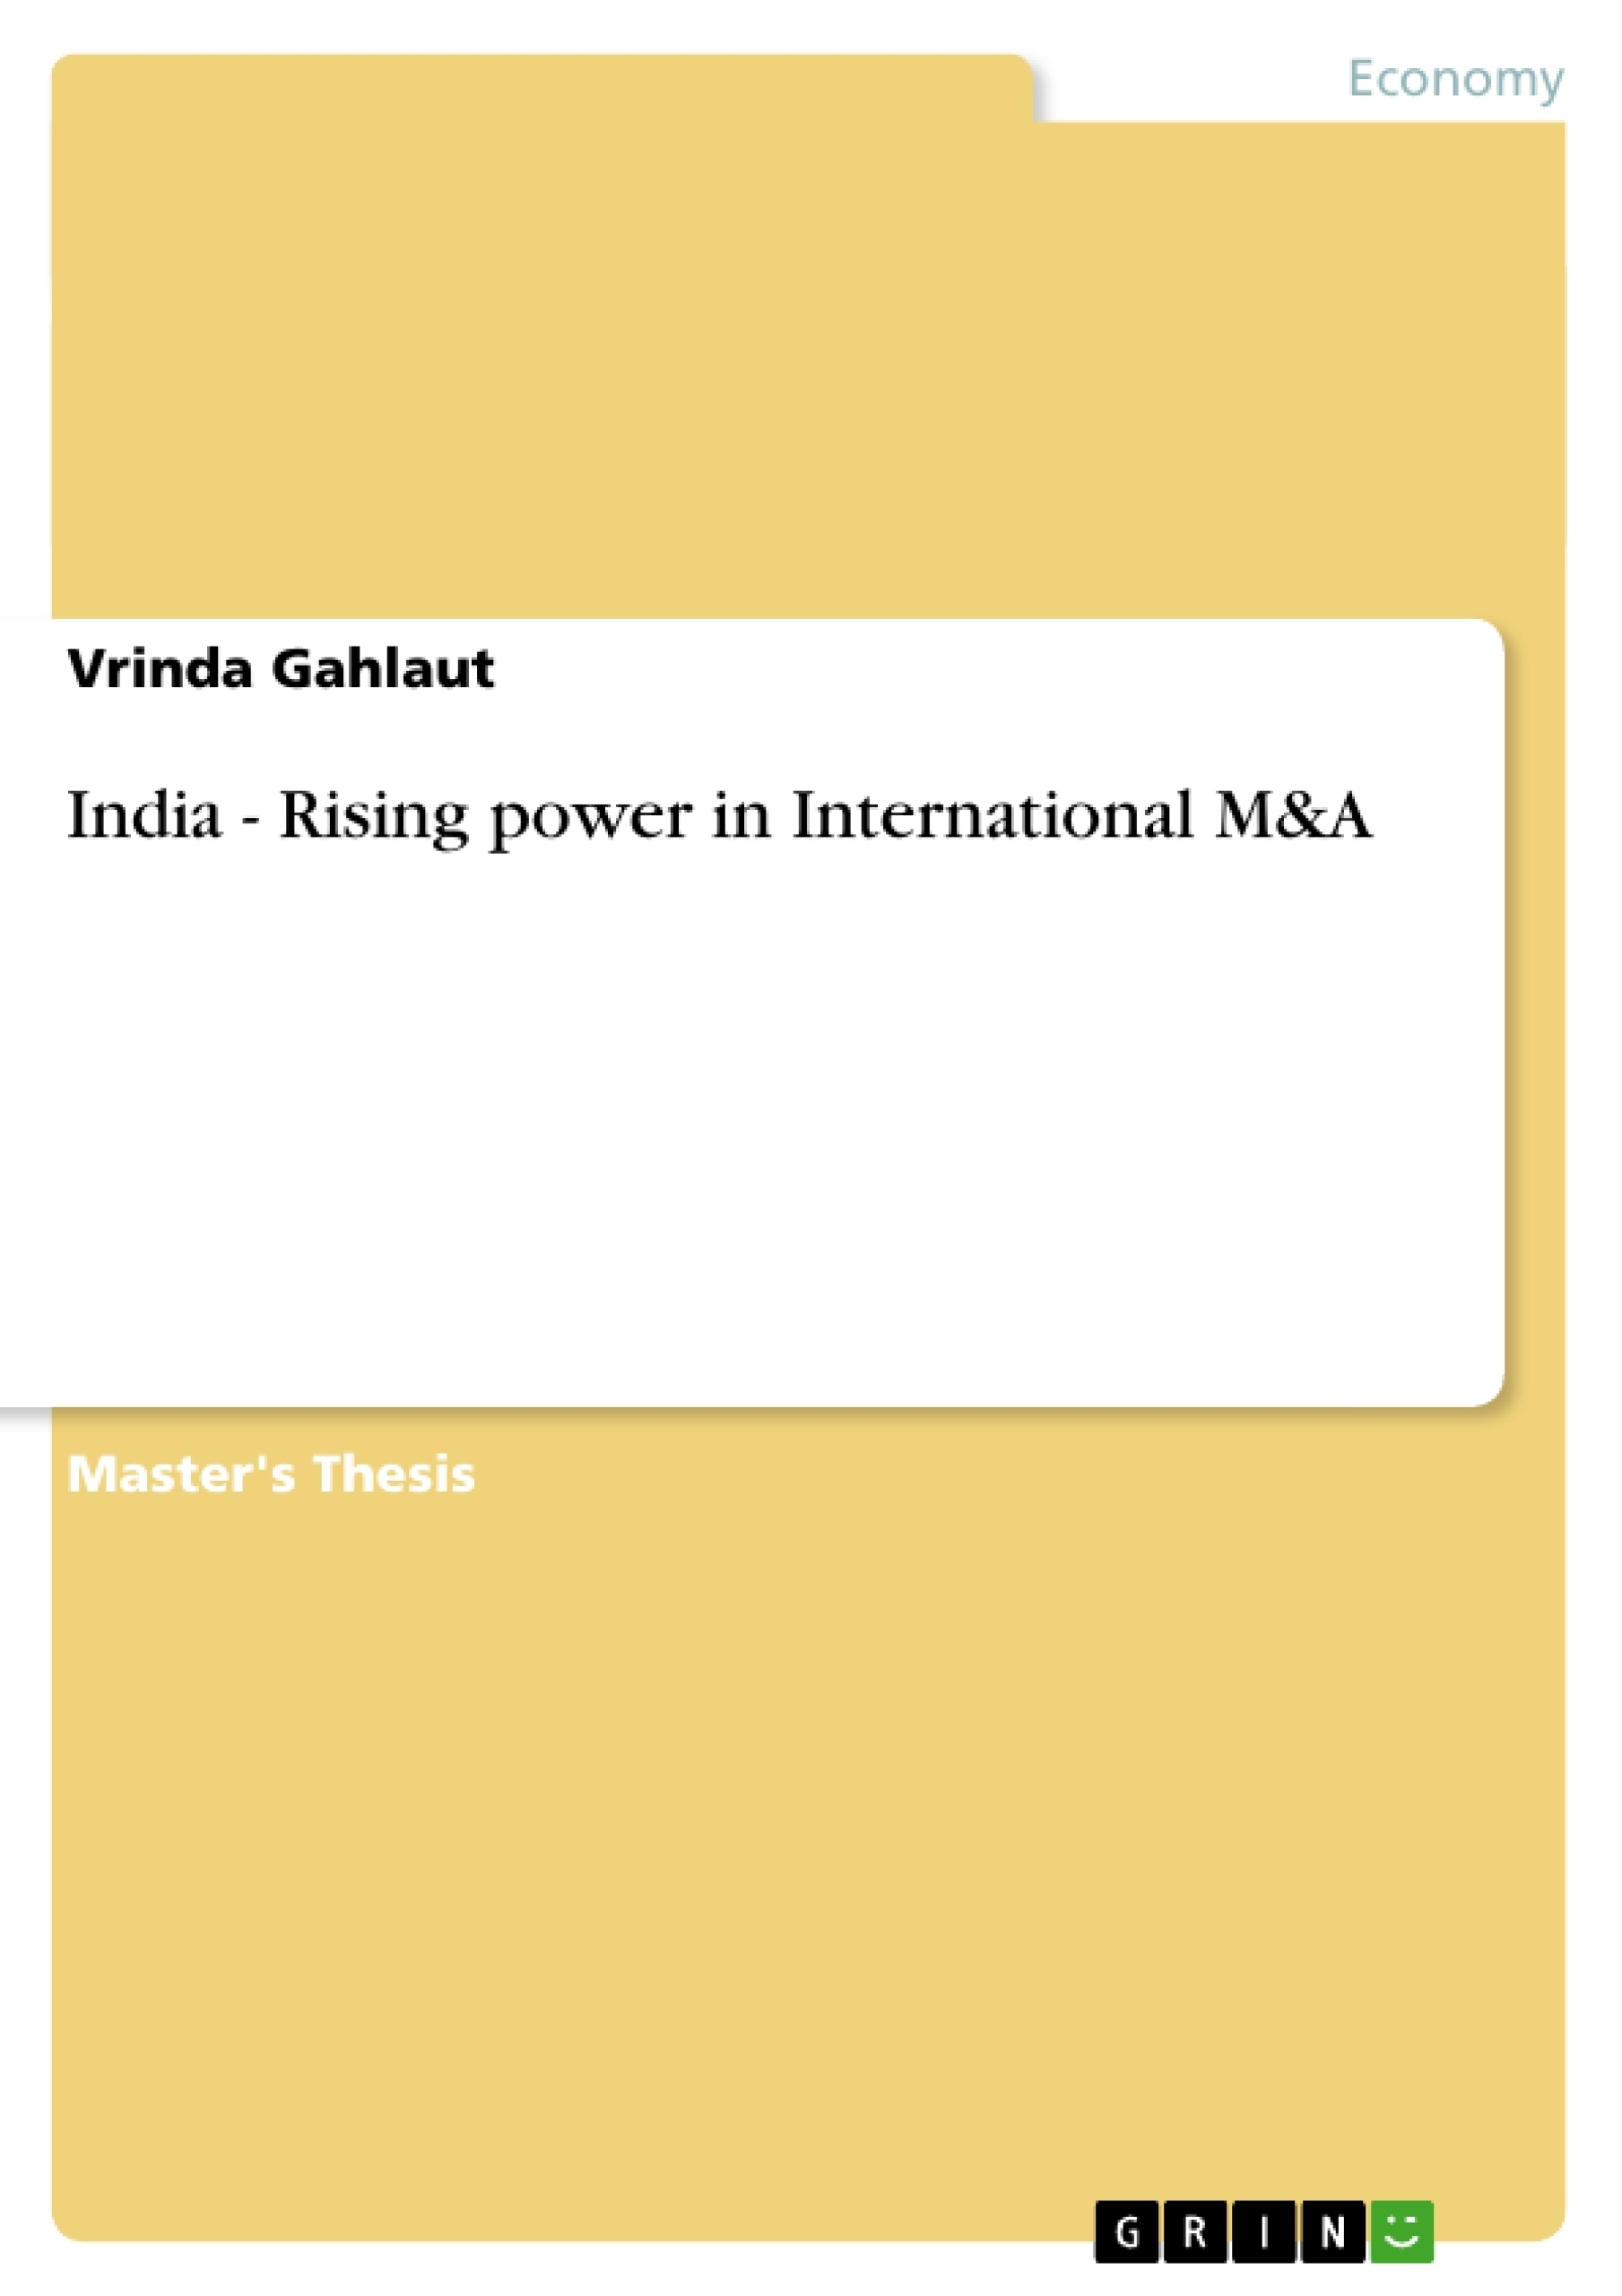 Title: India - Rising power in International M&A